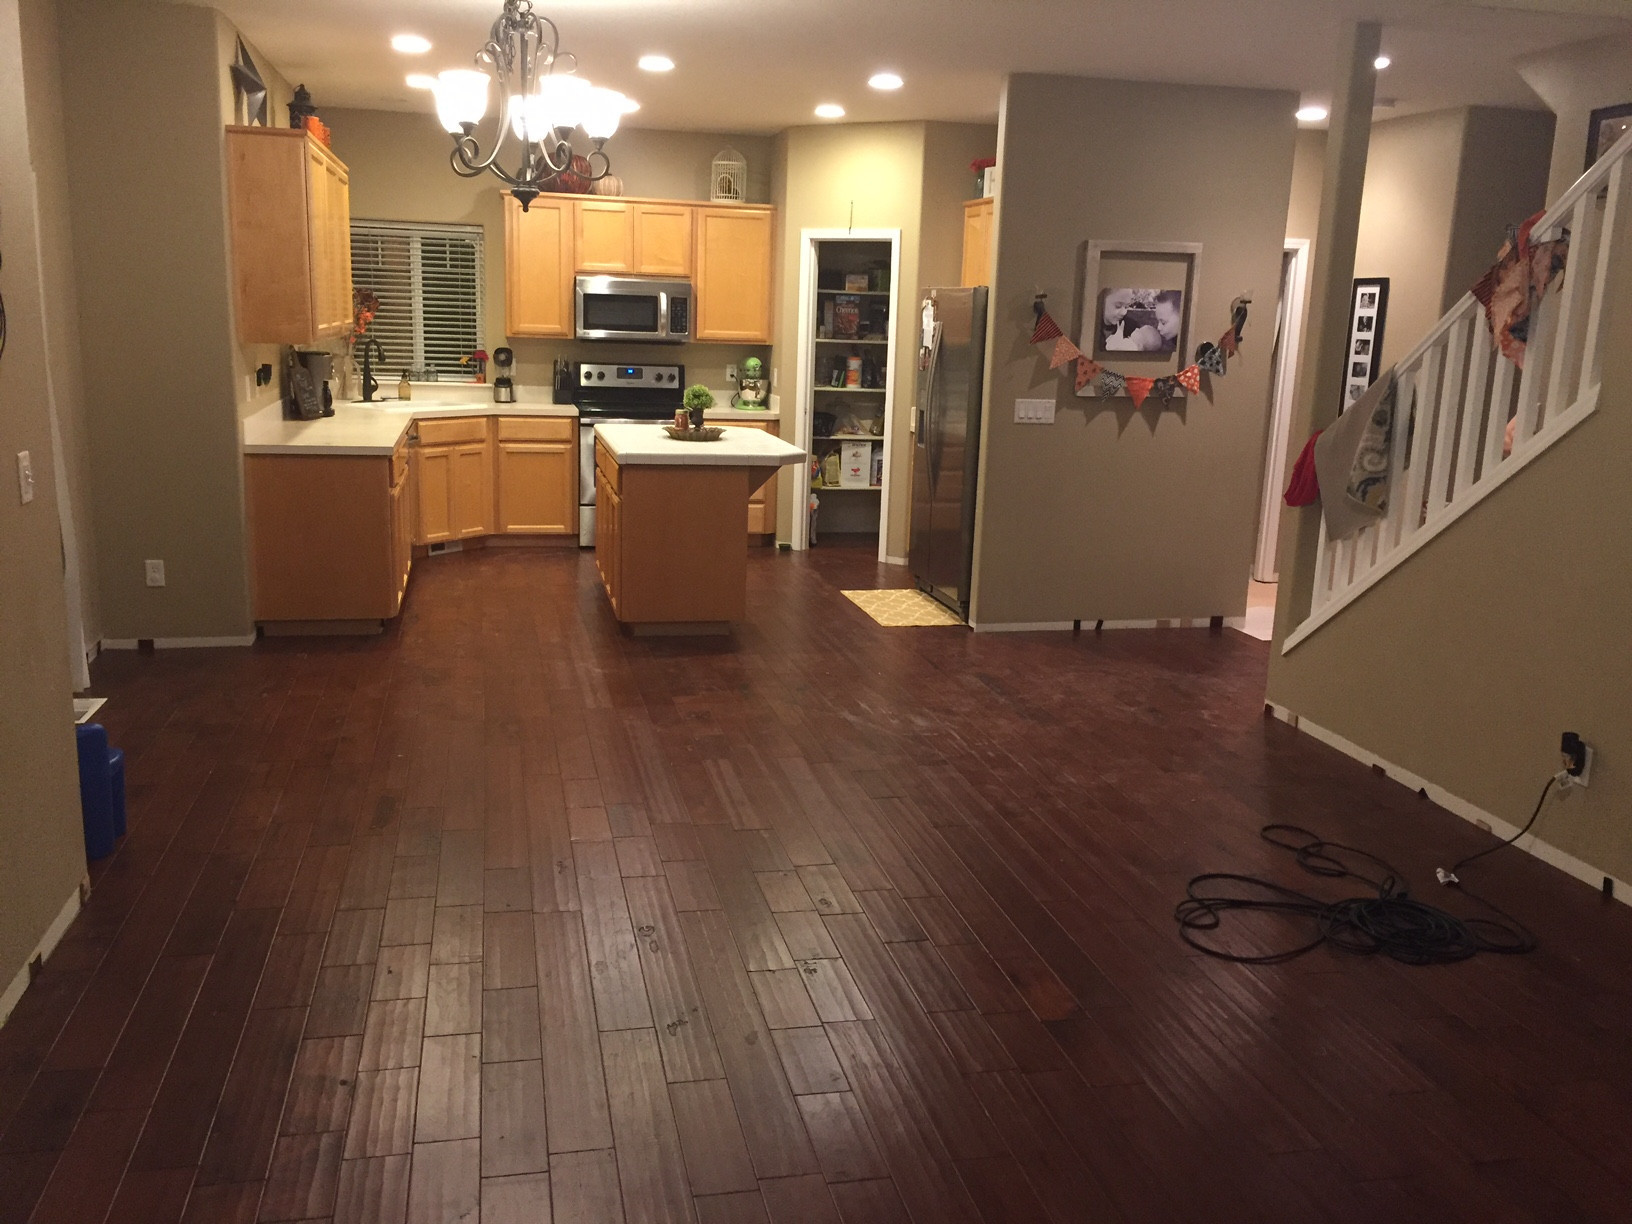 17 Best Can Hardwood Floors Be Installed On Concrete 2021 free download can hardwood floors be installed on concrete of how to fix laminate flooring that is buckling floor intended for how to fix laminate flooring that is buckling how can i secure fasten a half